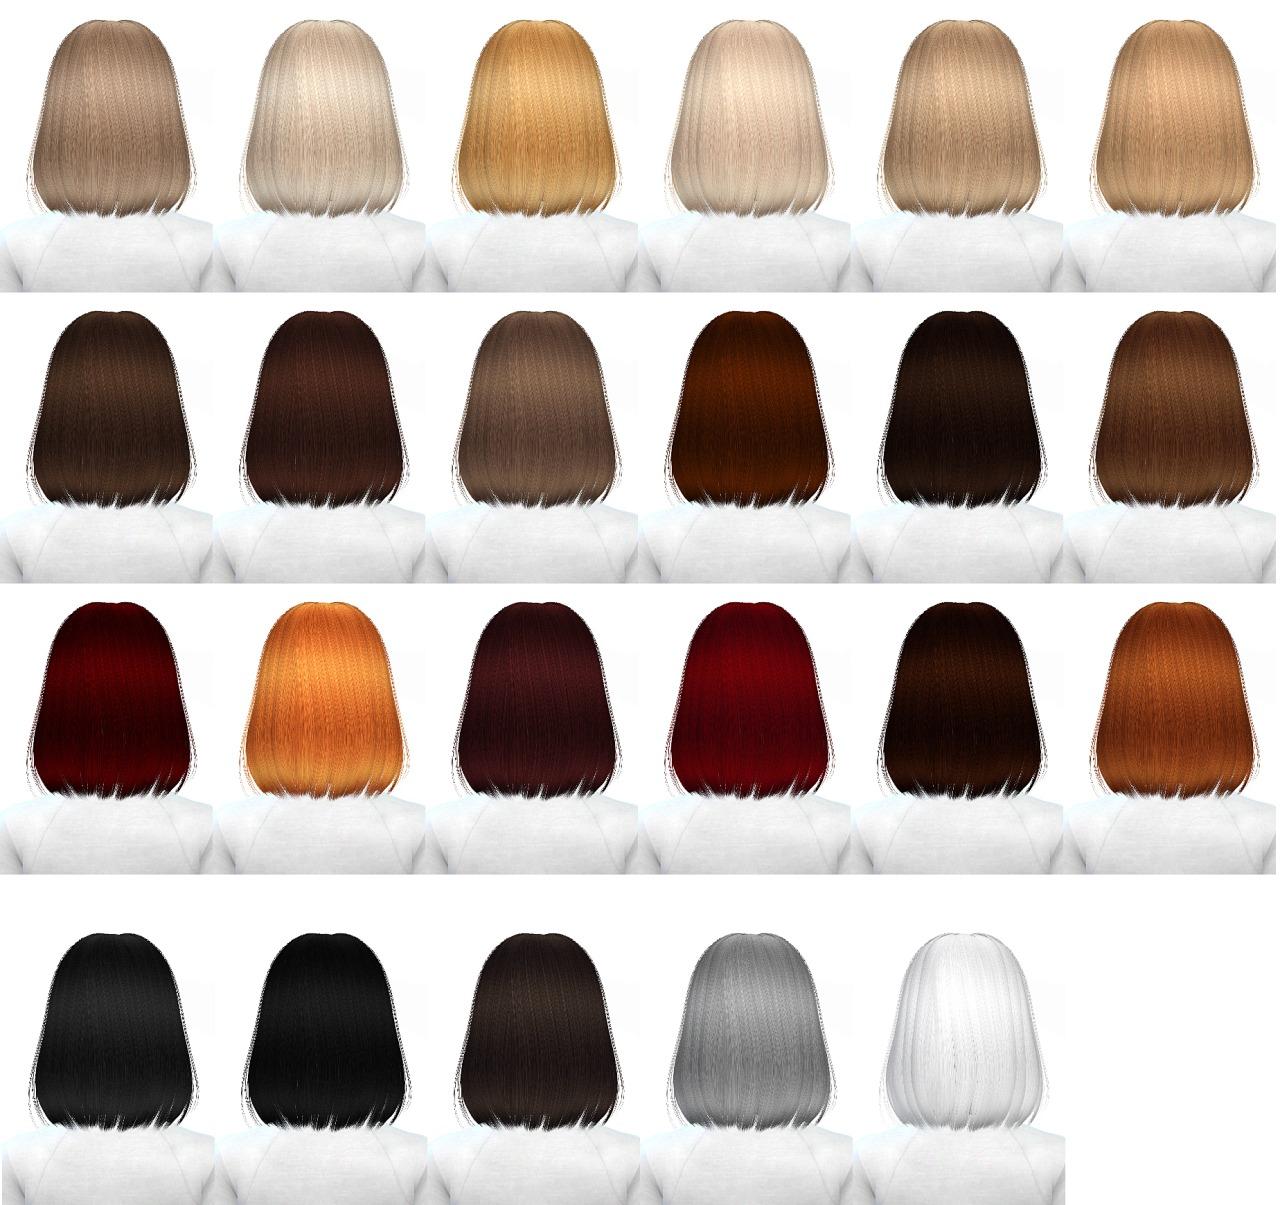 Alessos LION hair retexture 45 colors at Miss Paraply